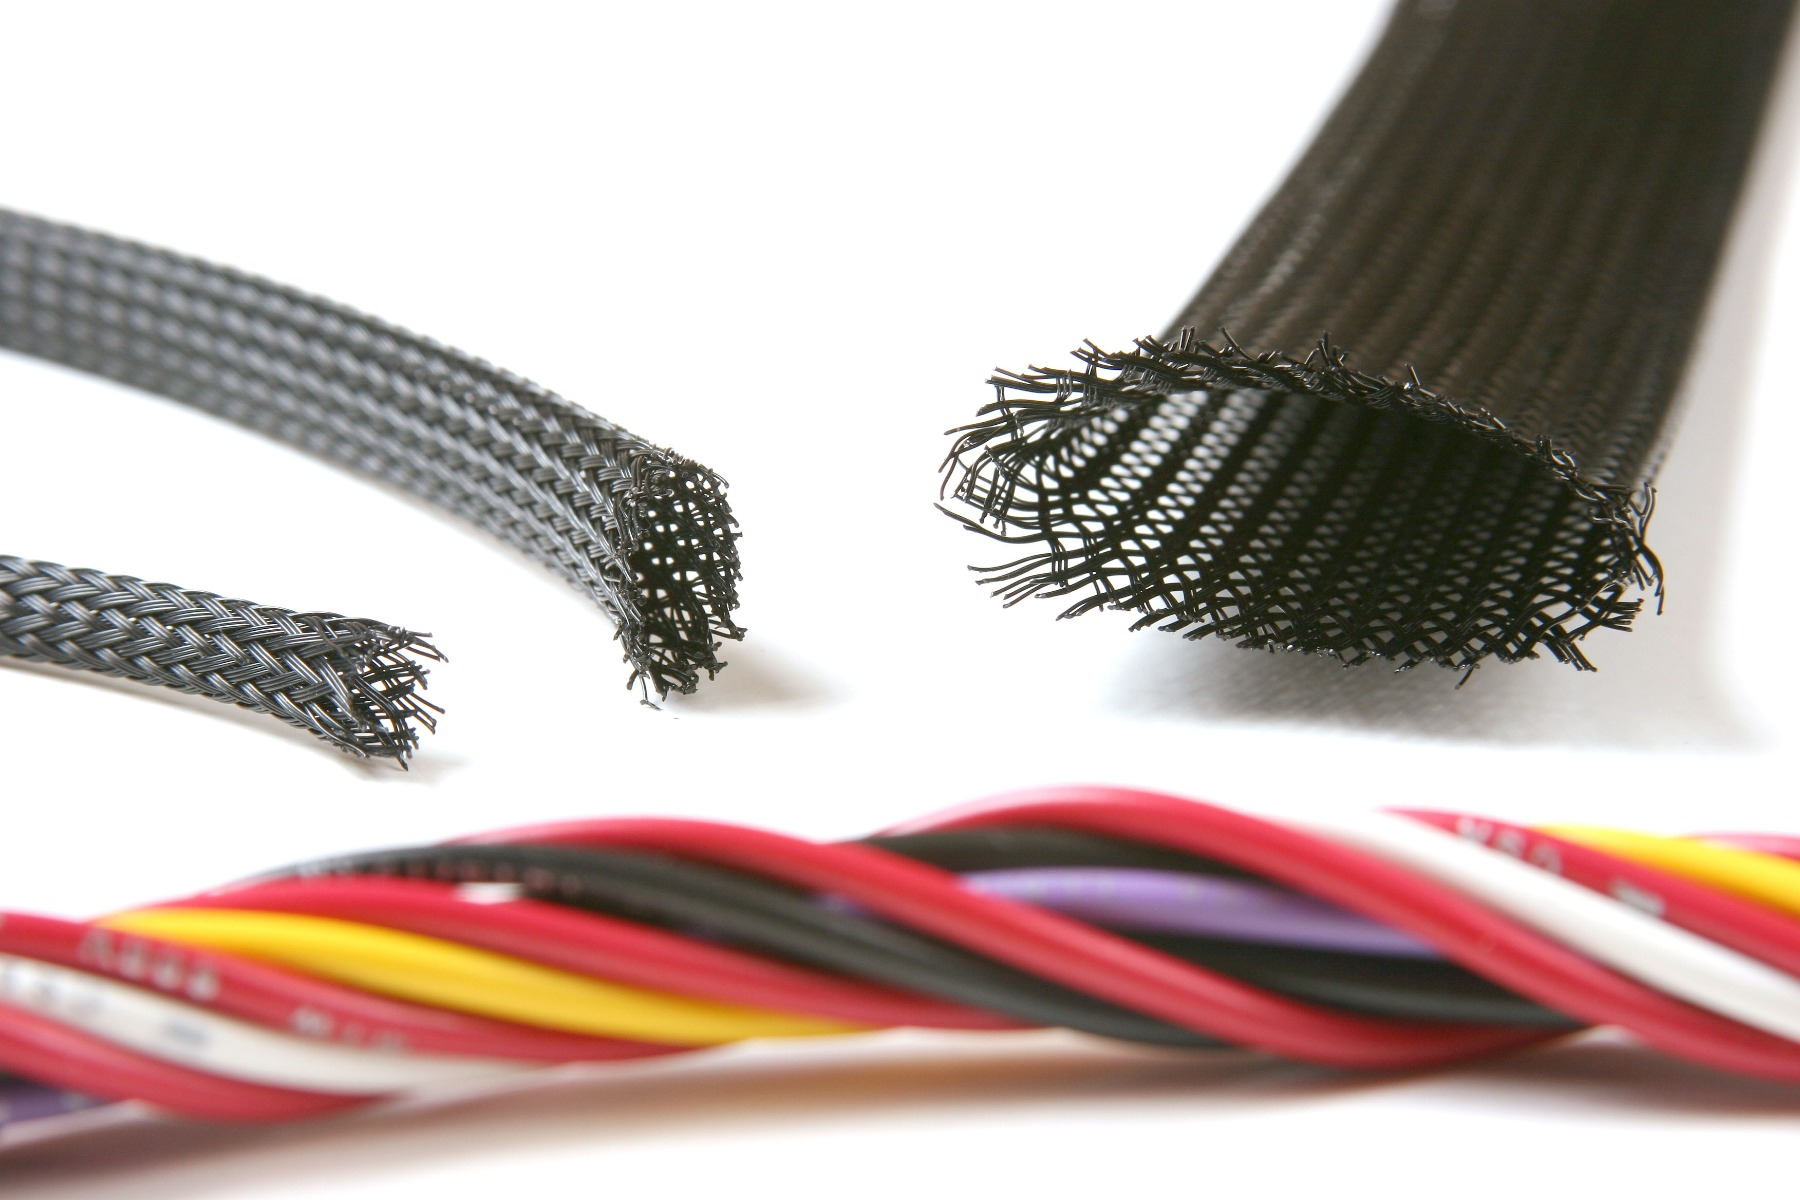 Tubing & Sleeving Cable Management